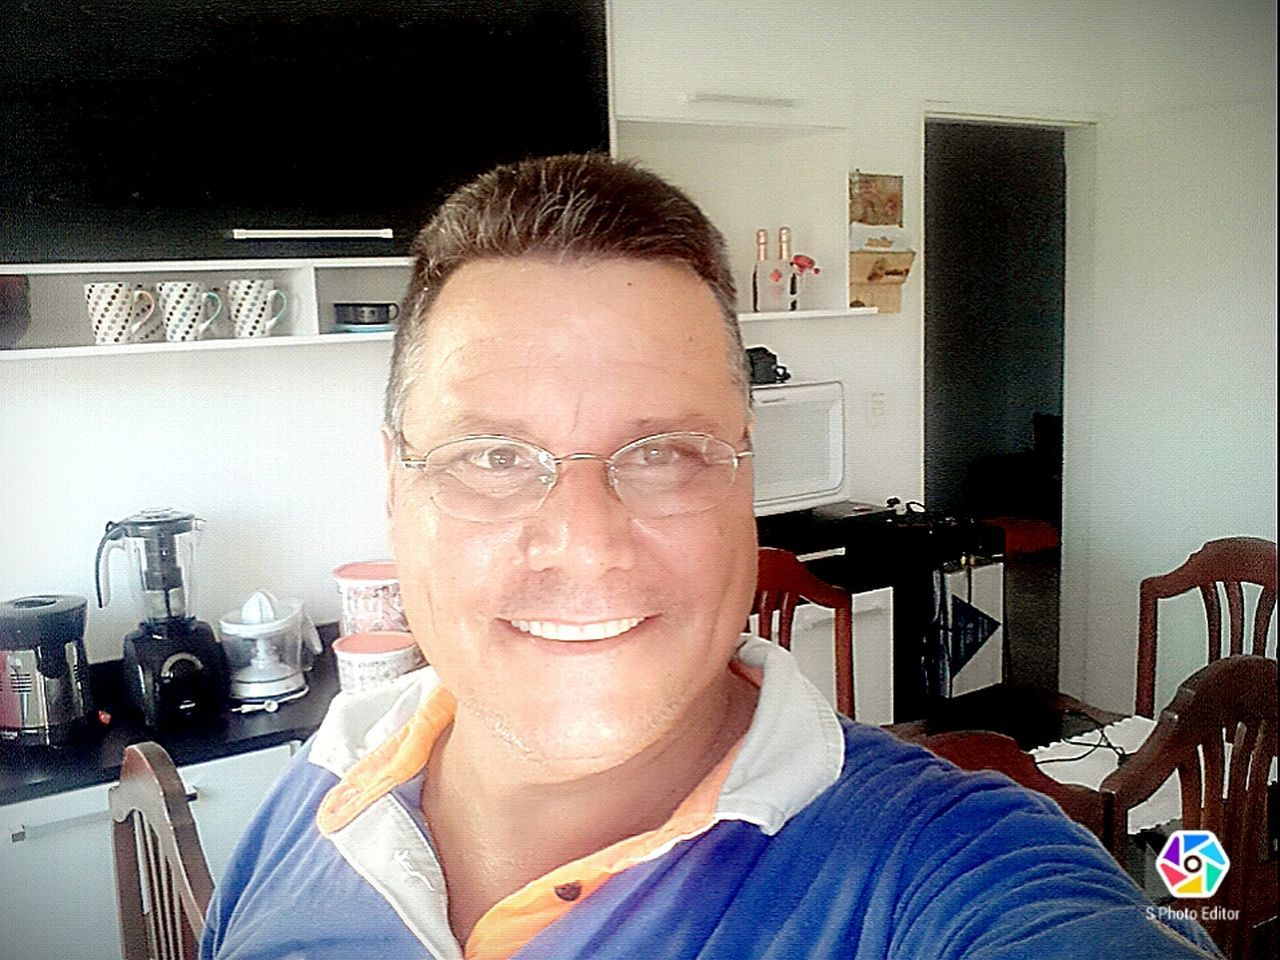 Ser simples é ser feliz Only Men Mature Adult One Man Only One Person Adults Only Headshot Eyeglasses  Looking At Camera One Mature Man Only Portrait Front View Real People Indoors  Adult People Eyesight Human Body Part Day ser simples é ser feliz Felucca Boat. Pimenta First Eyeem Photo